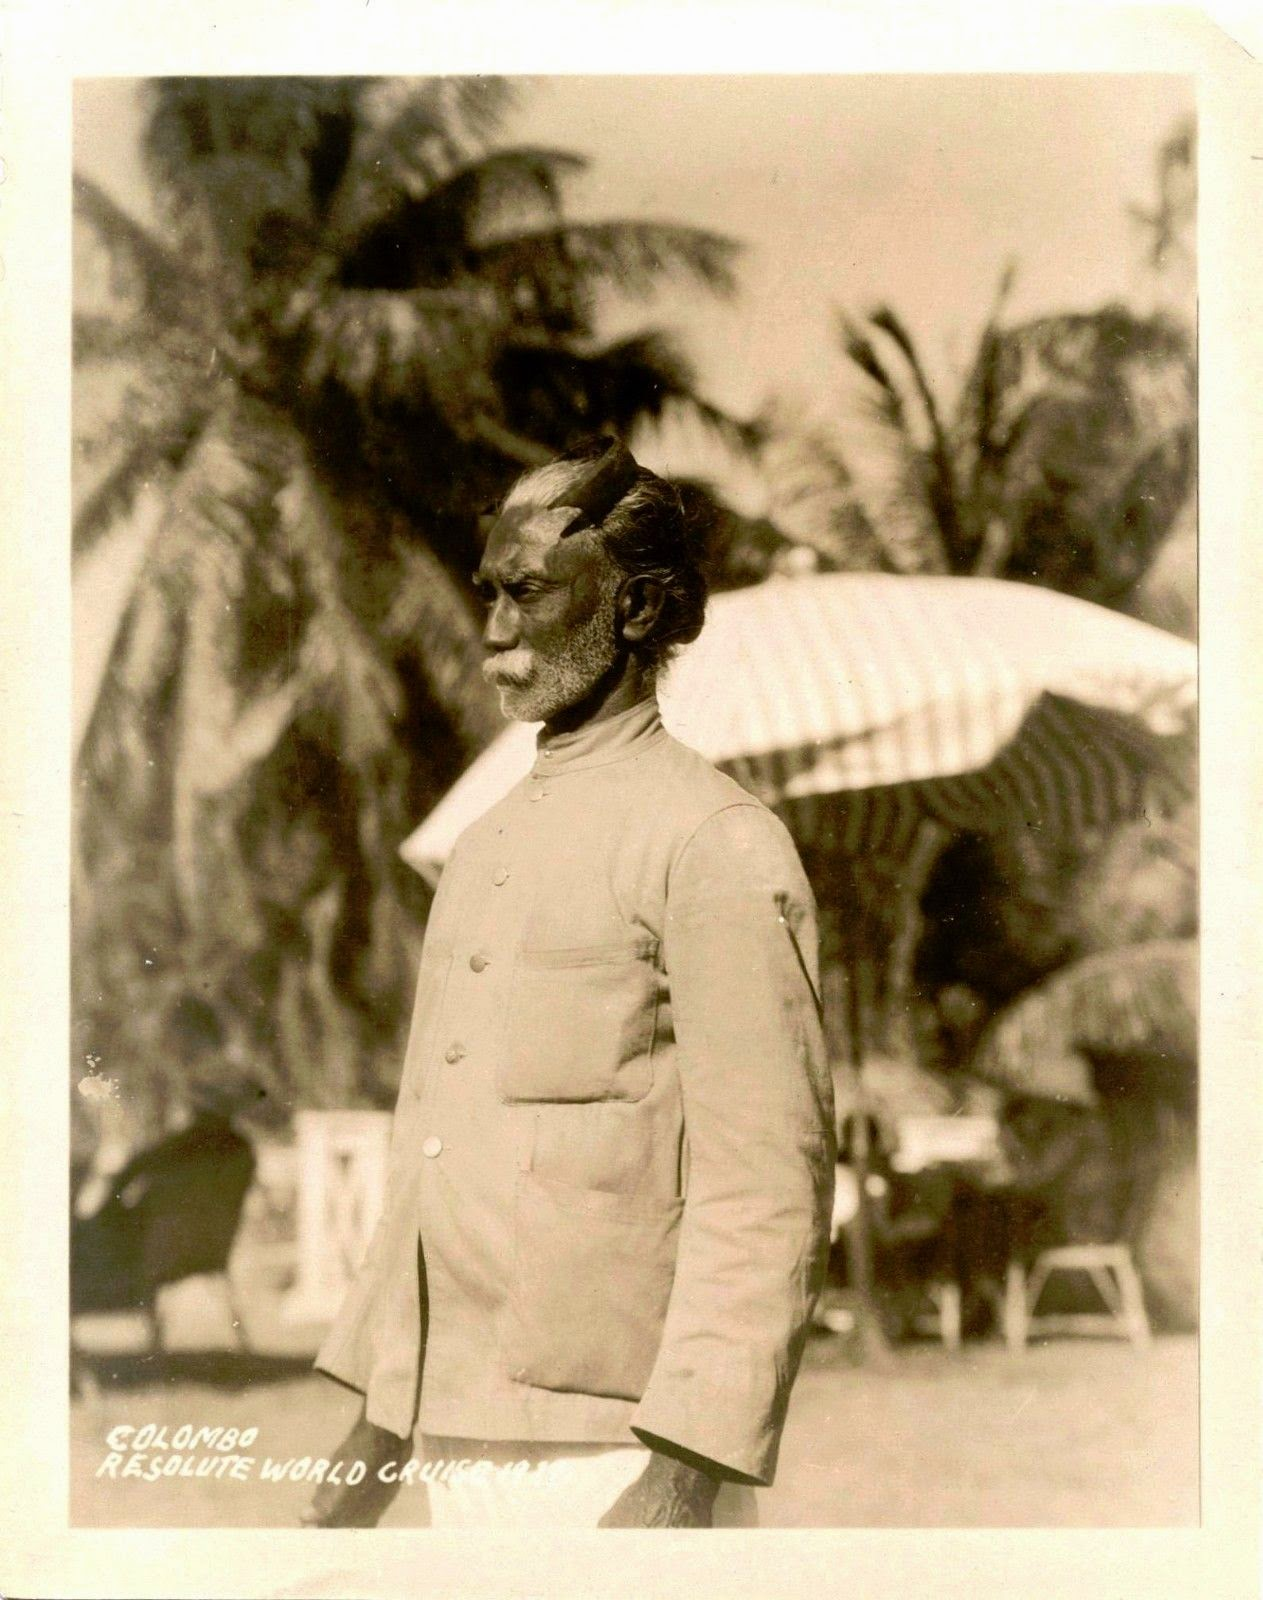 Portrait of a Man on Street of Colombo - Ceylon (Sri Lanka) 1929